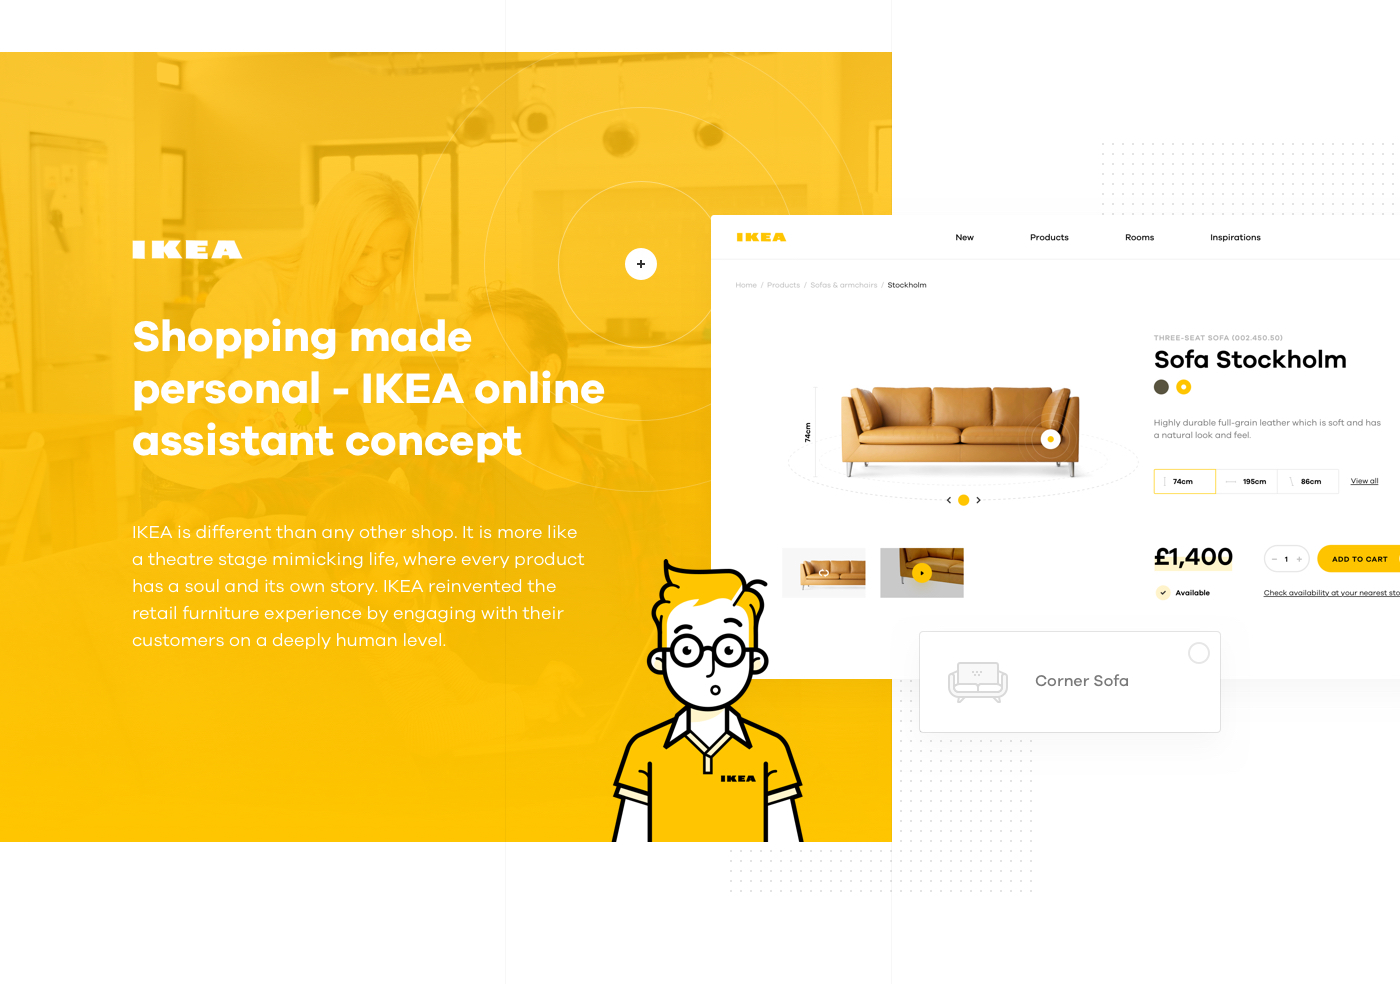 Shopping made personal - IKEA online experience concept on